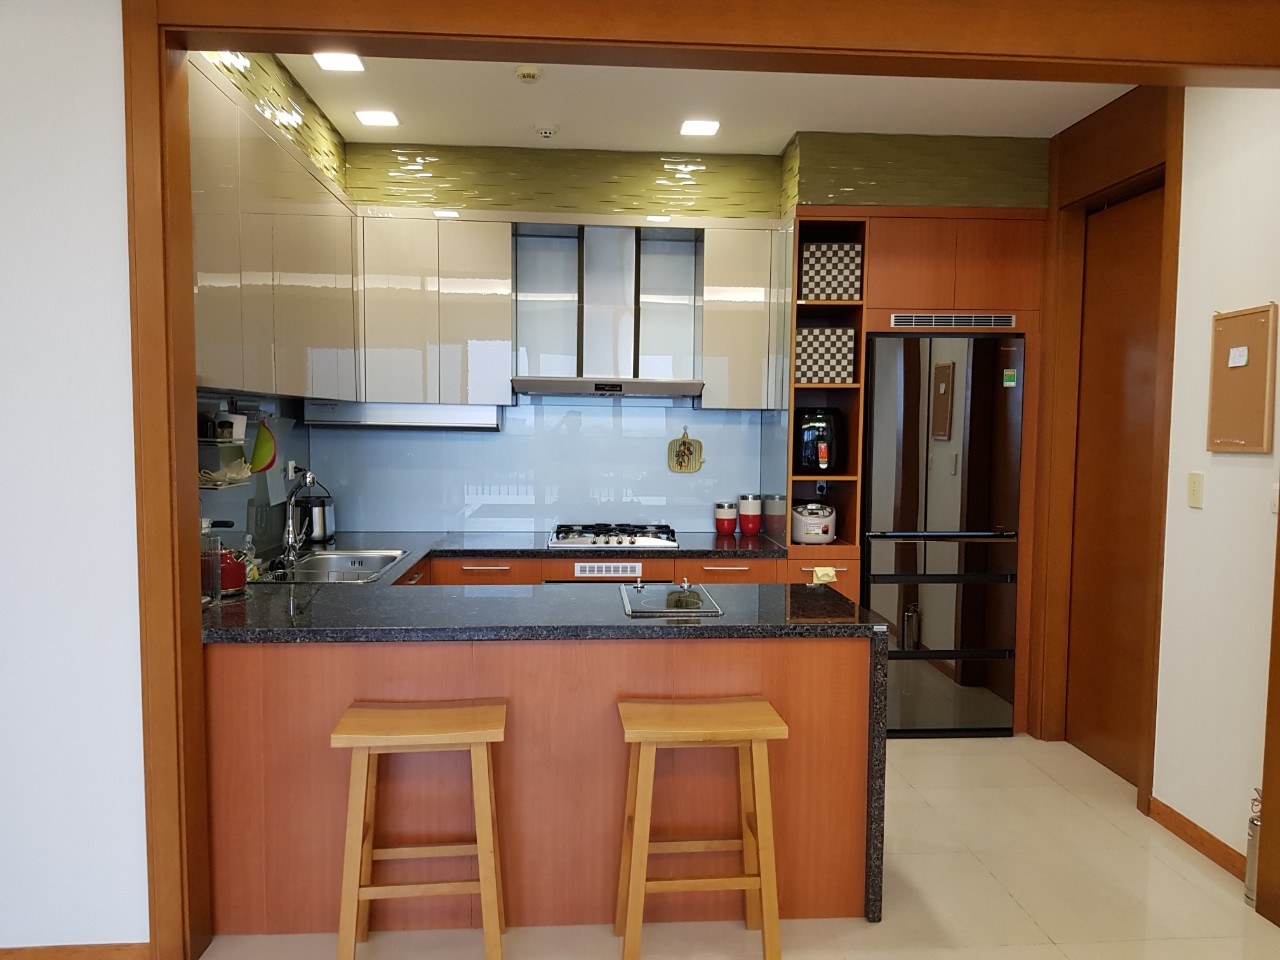 Xi Apartment Nice Furniture Good View in Thao Dien D206096 (3)